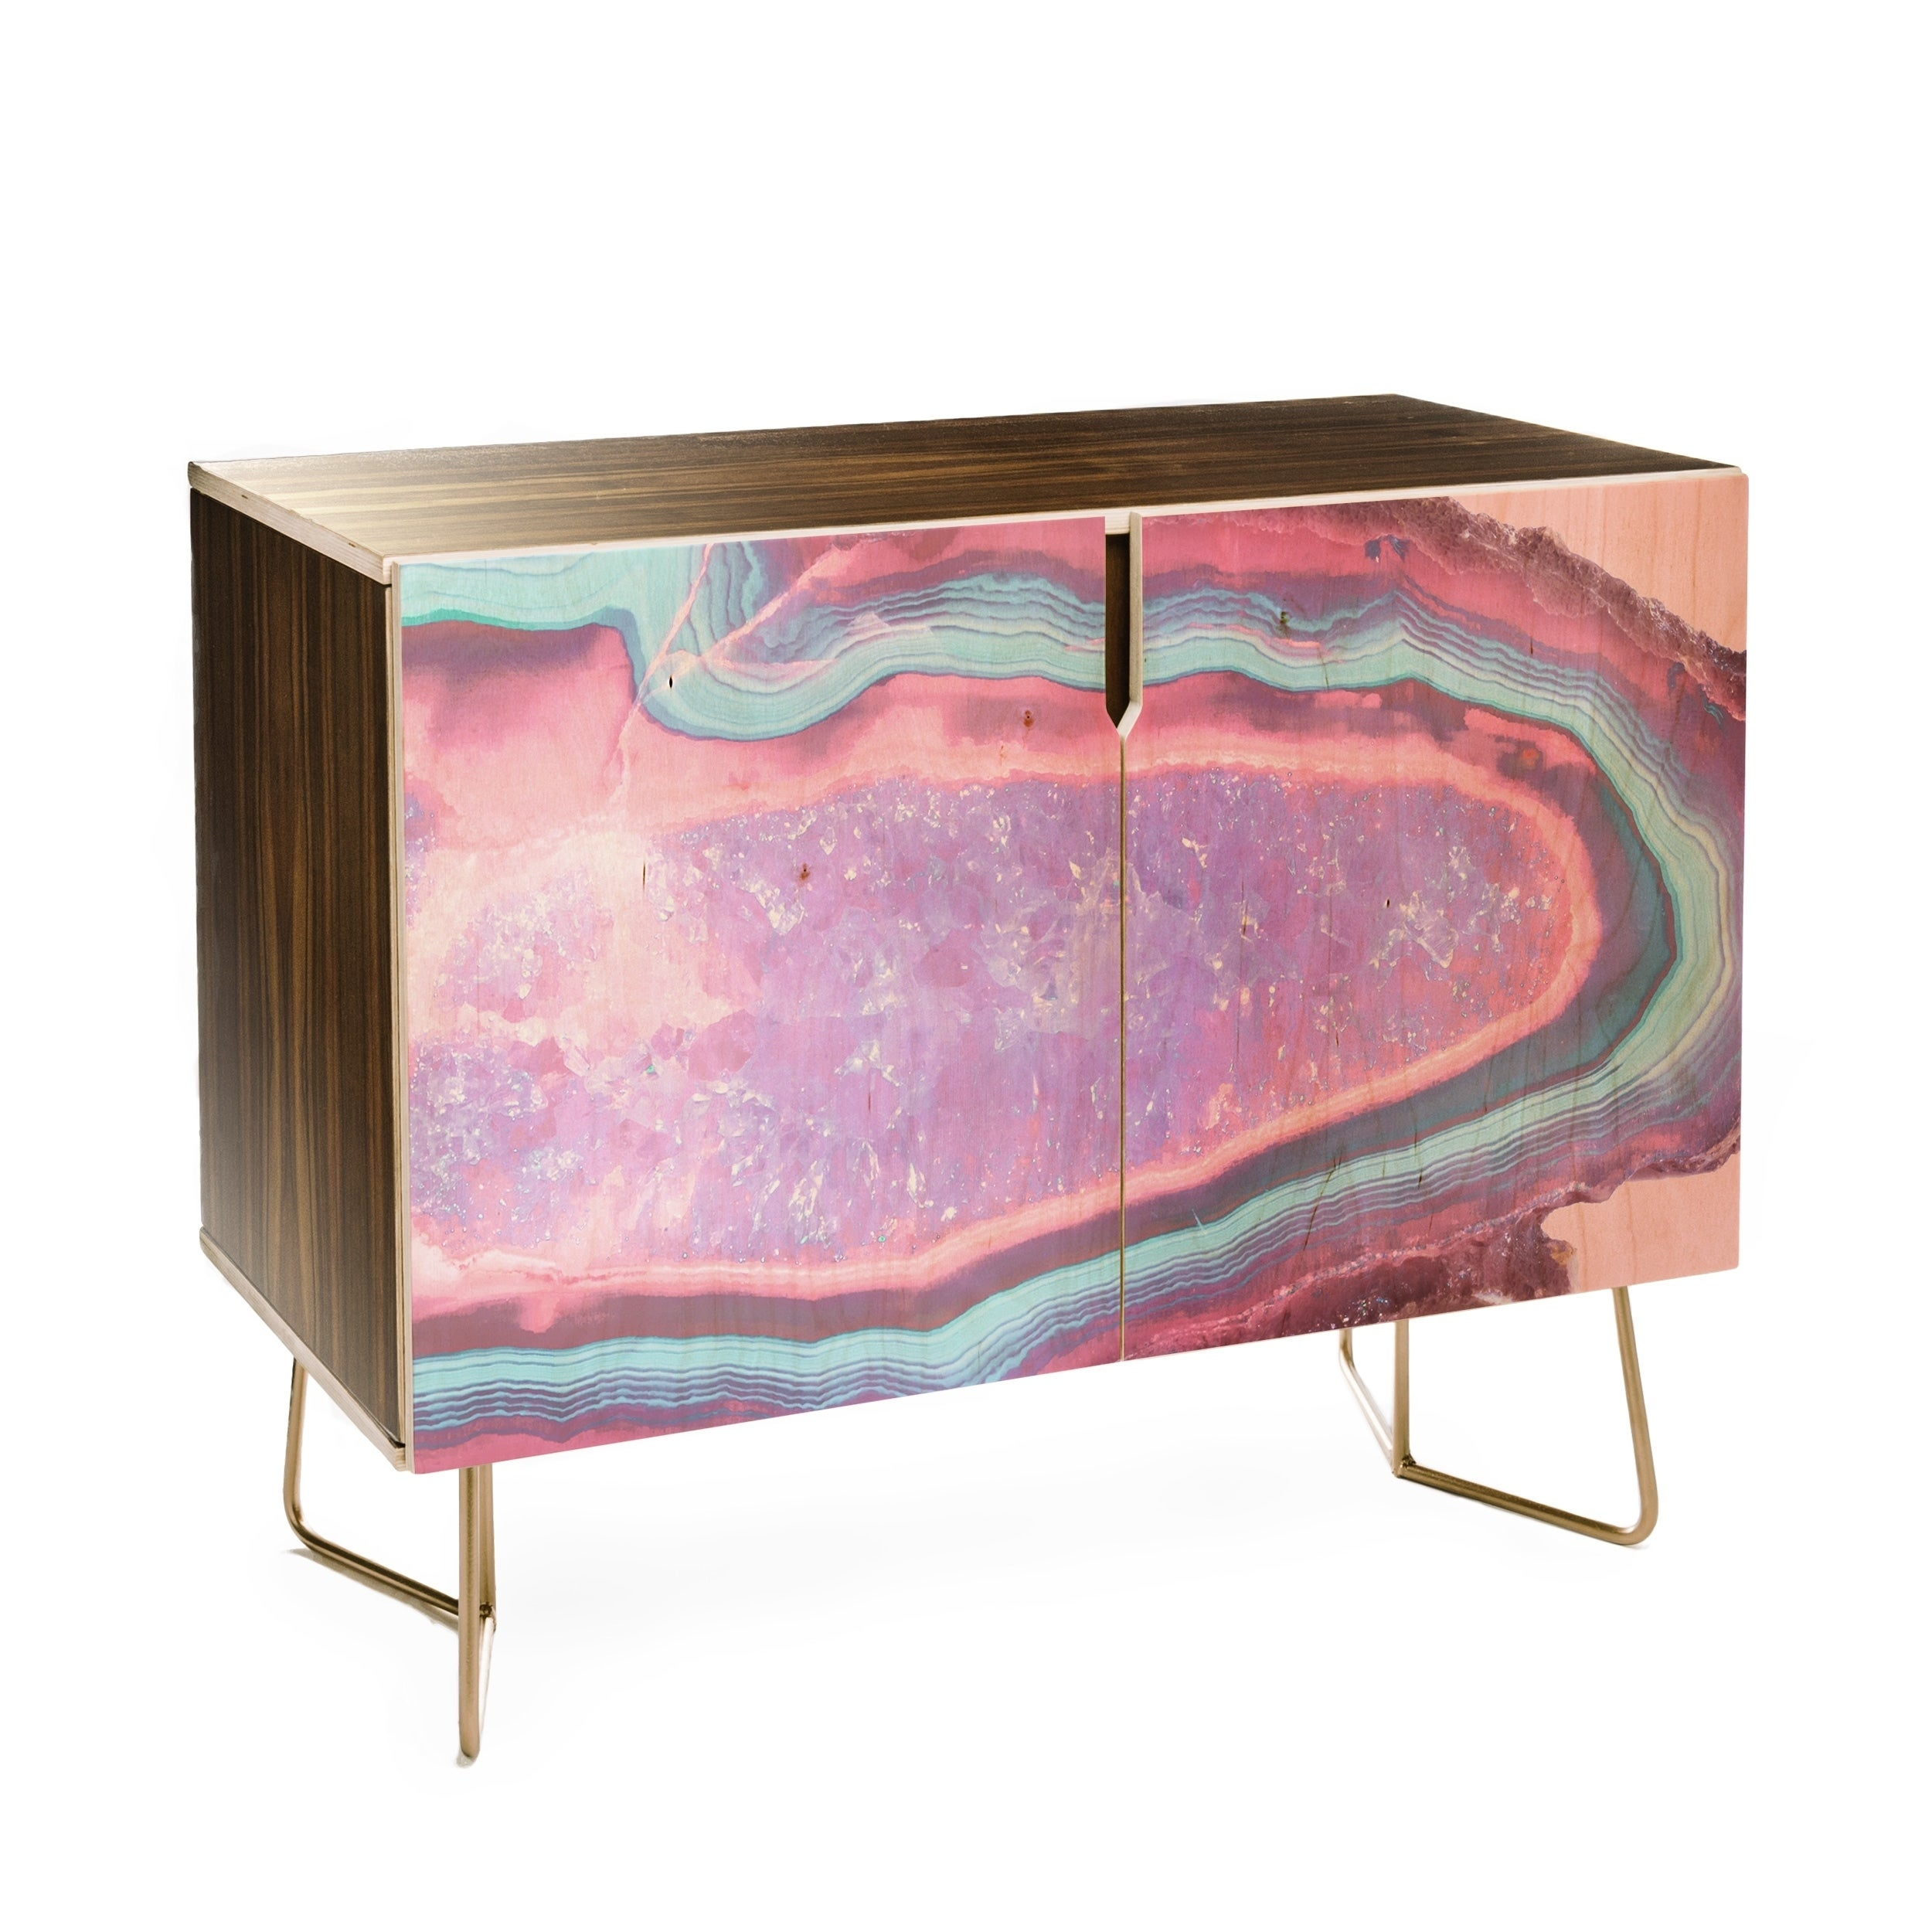 Emanuela Carratoni Serenity And Rose Agate With Amethyst Crystals Credenza In Pale Pink Agate Wood Credenzas (Gallery 9 of 30)